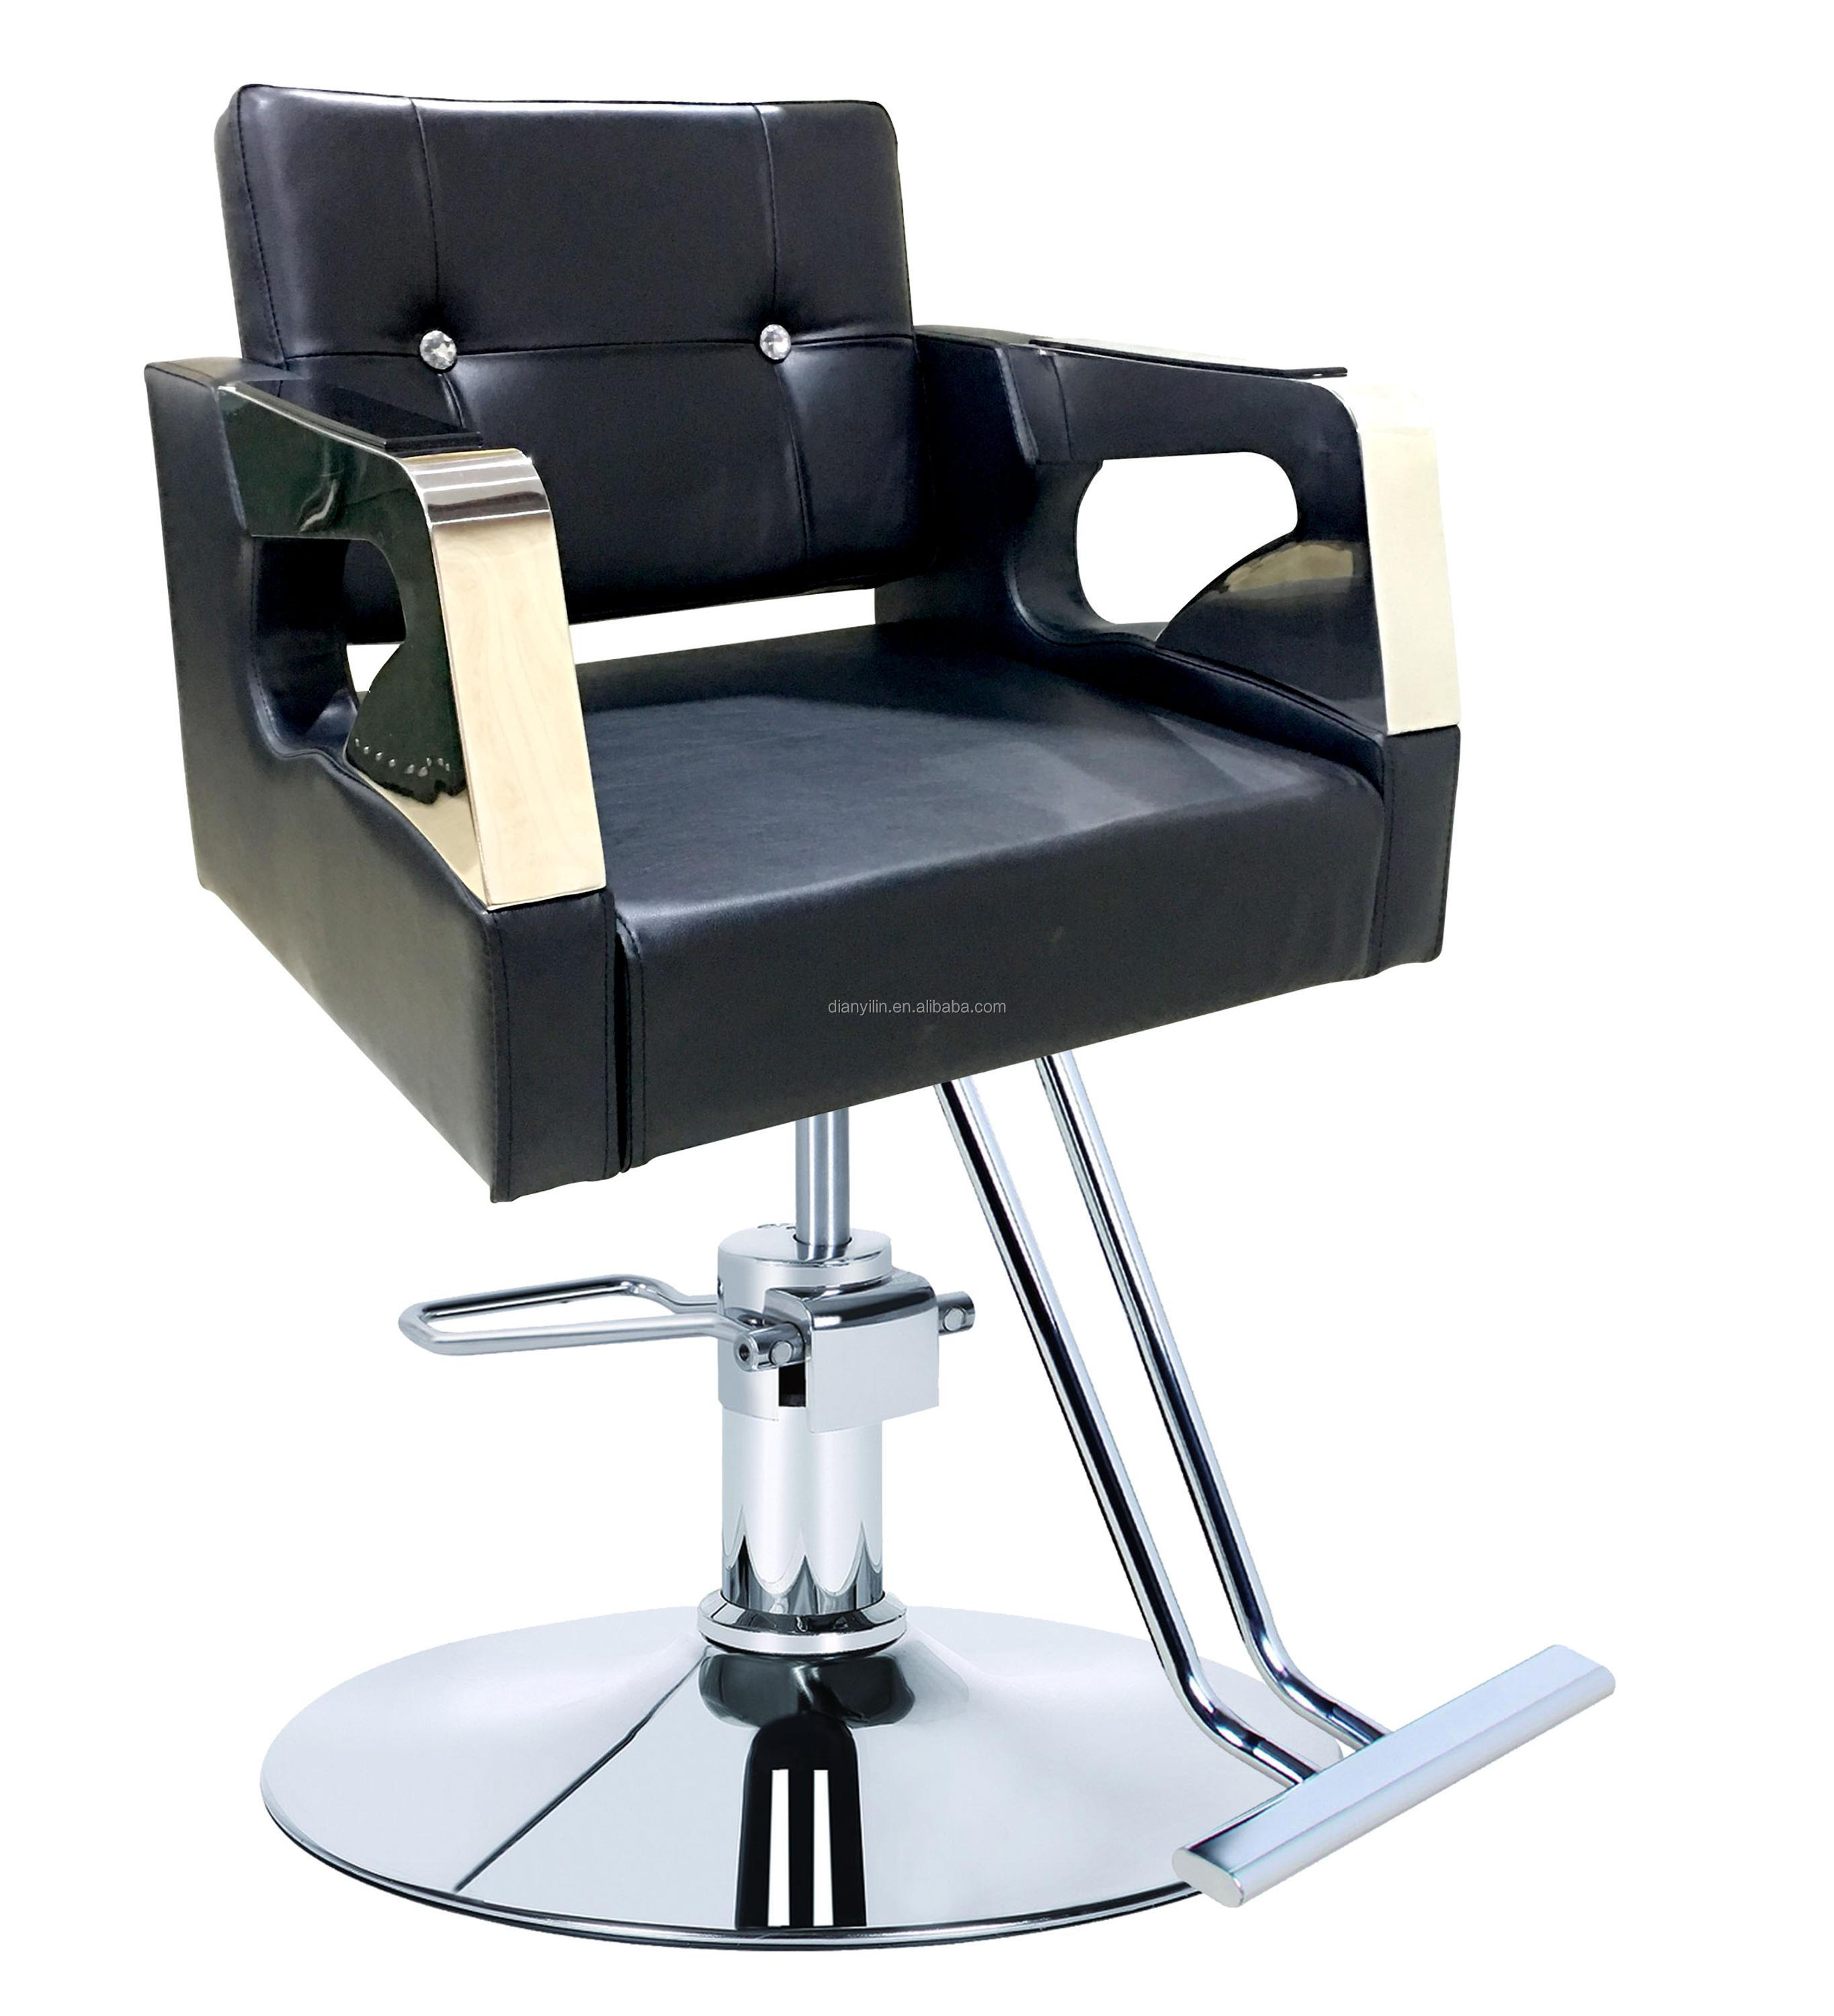 kids salon furniture kids salon furniture suppliers and